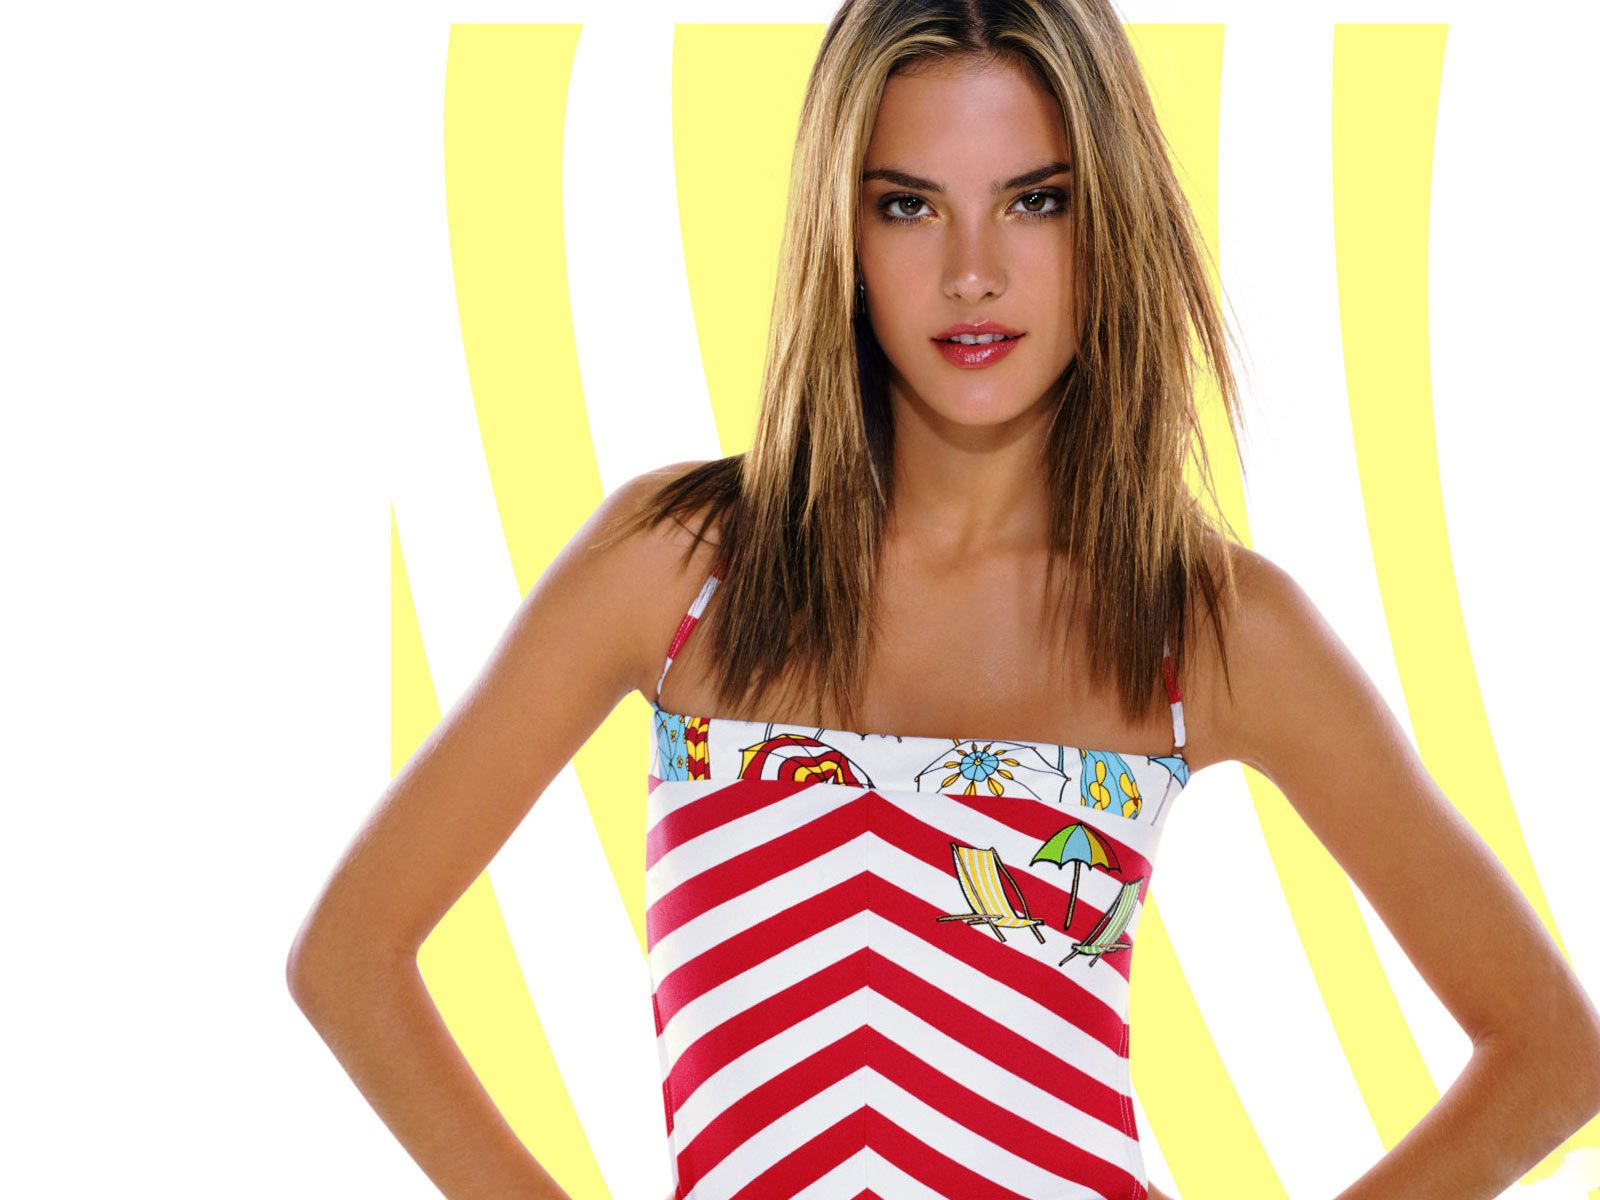 Alessandra Ambrosio Young Photoshoot Wallpaper Photo And Images